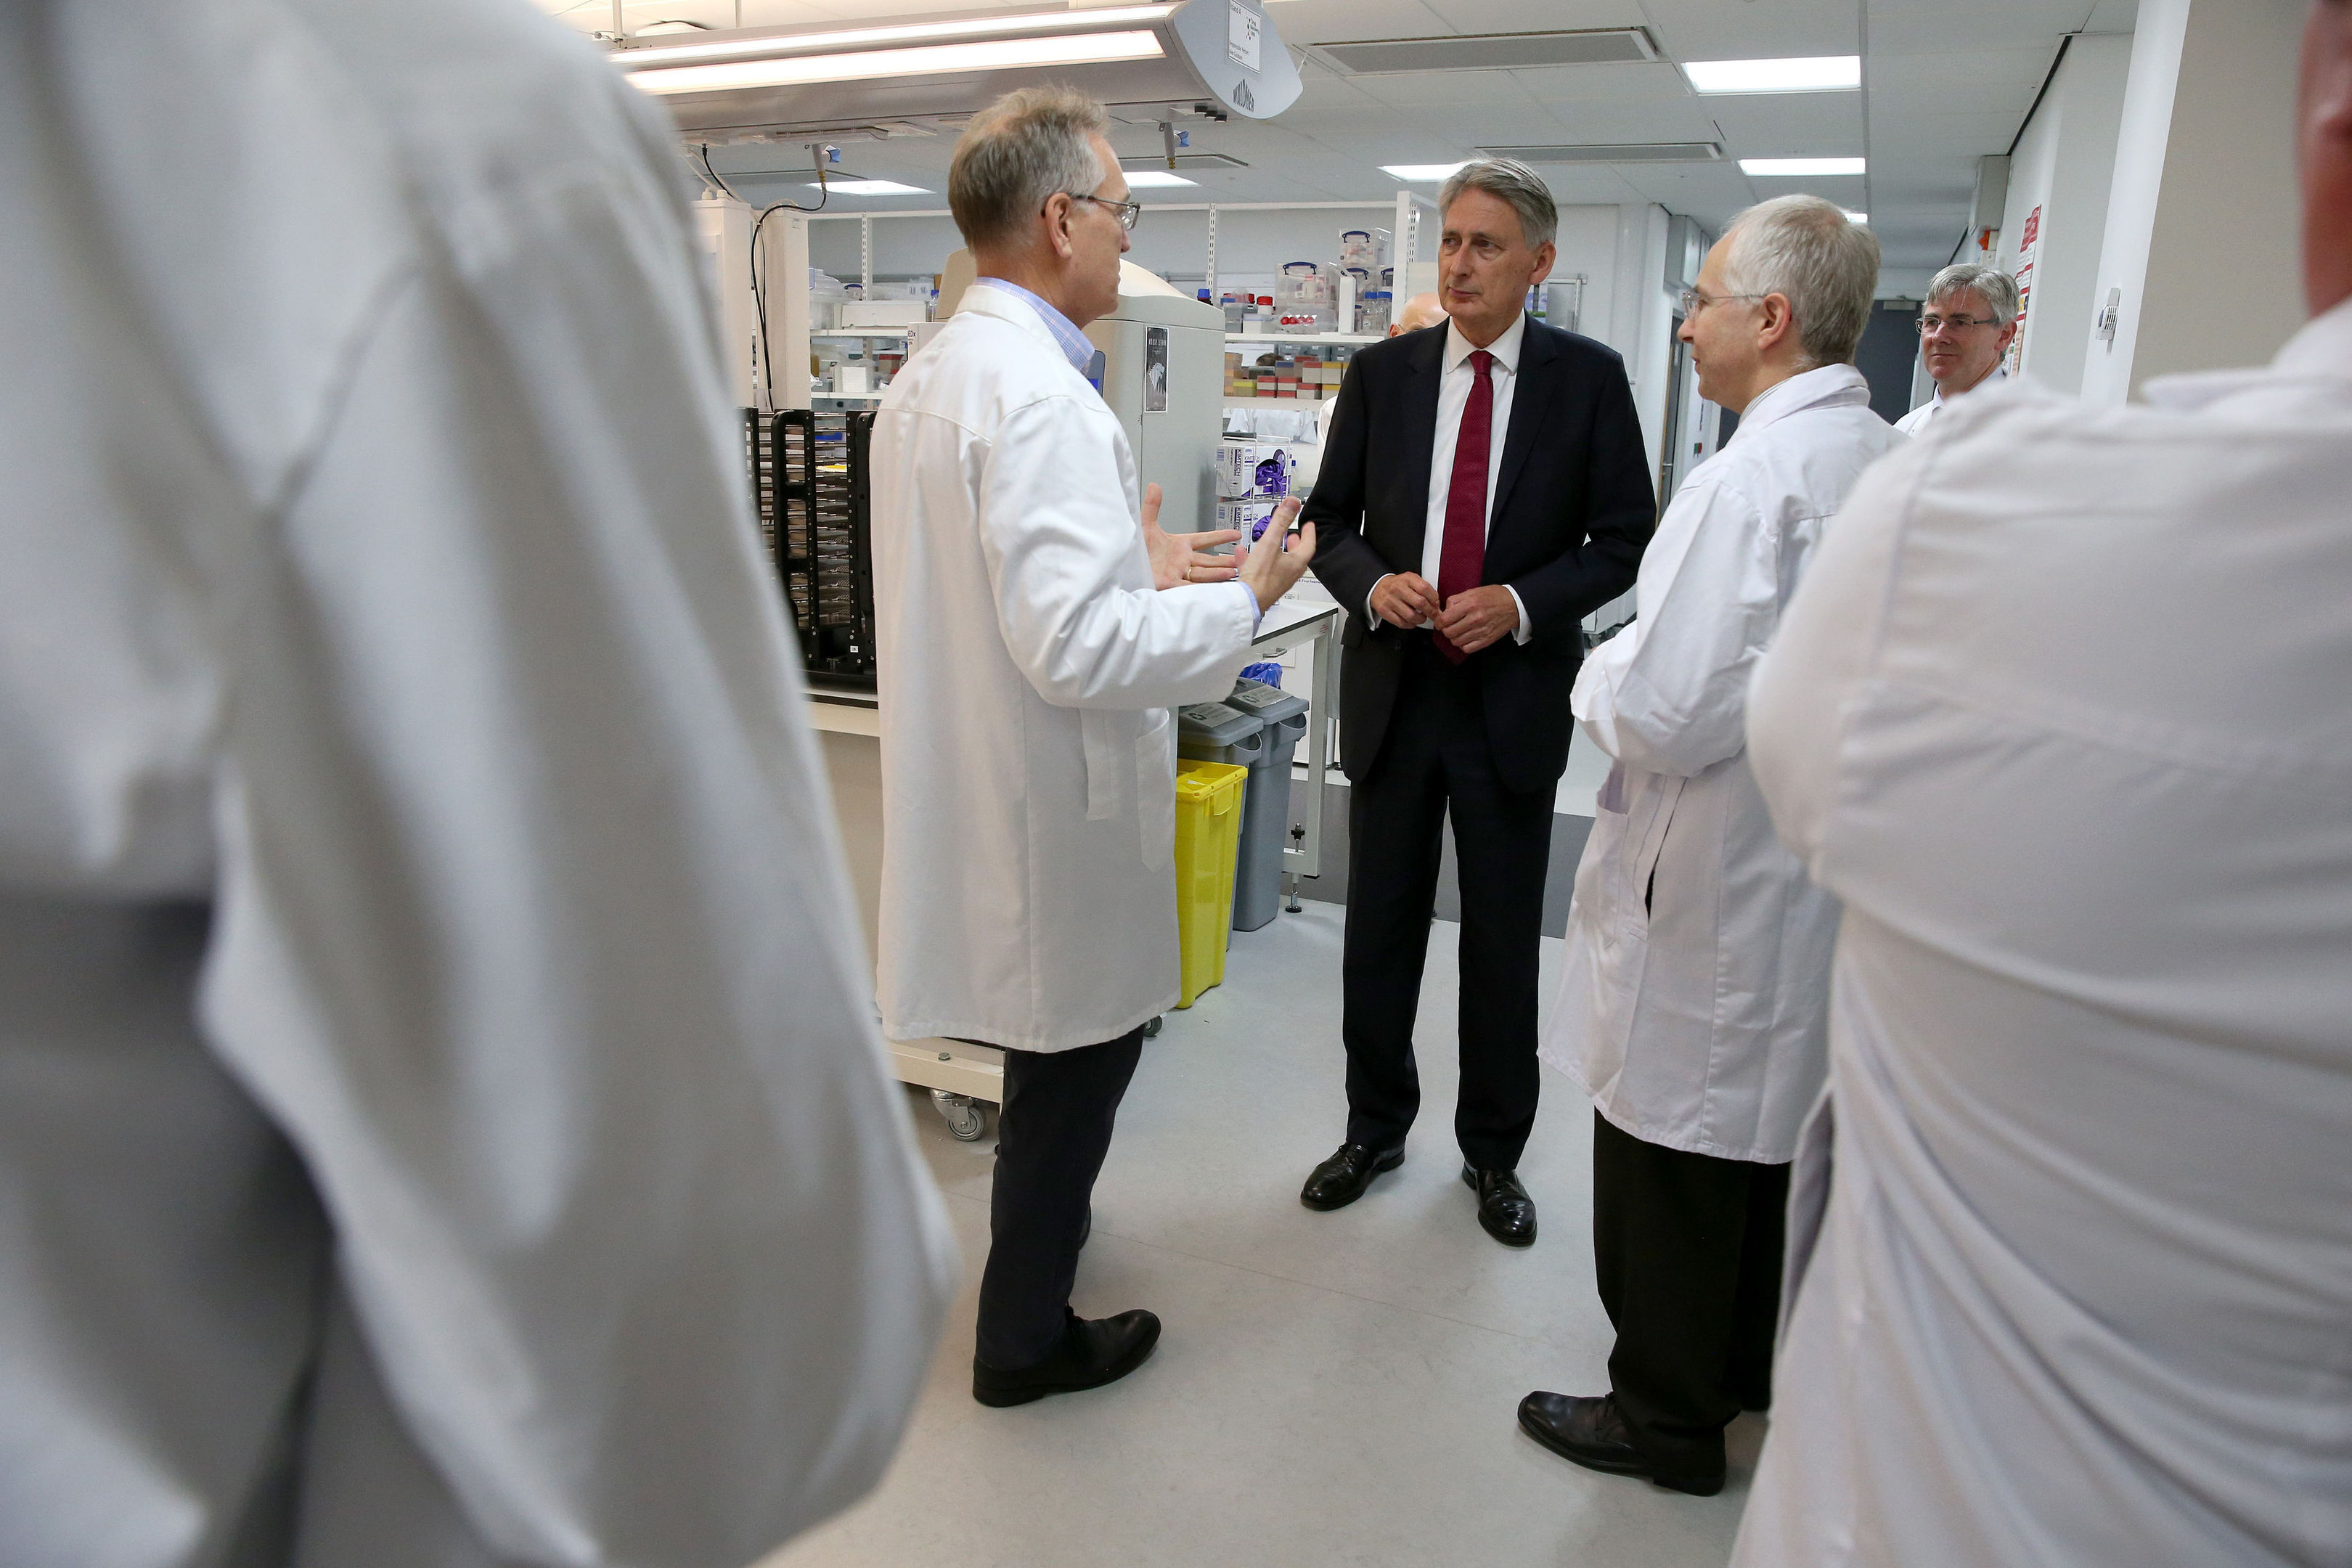 Chancellor Philip Hammond is shown around a lab by Professor Paul Wyatt (left) during a visit to Dundee University's School of Life Sciences.